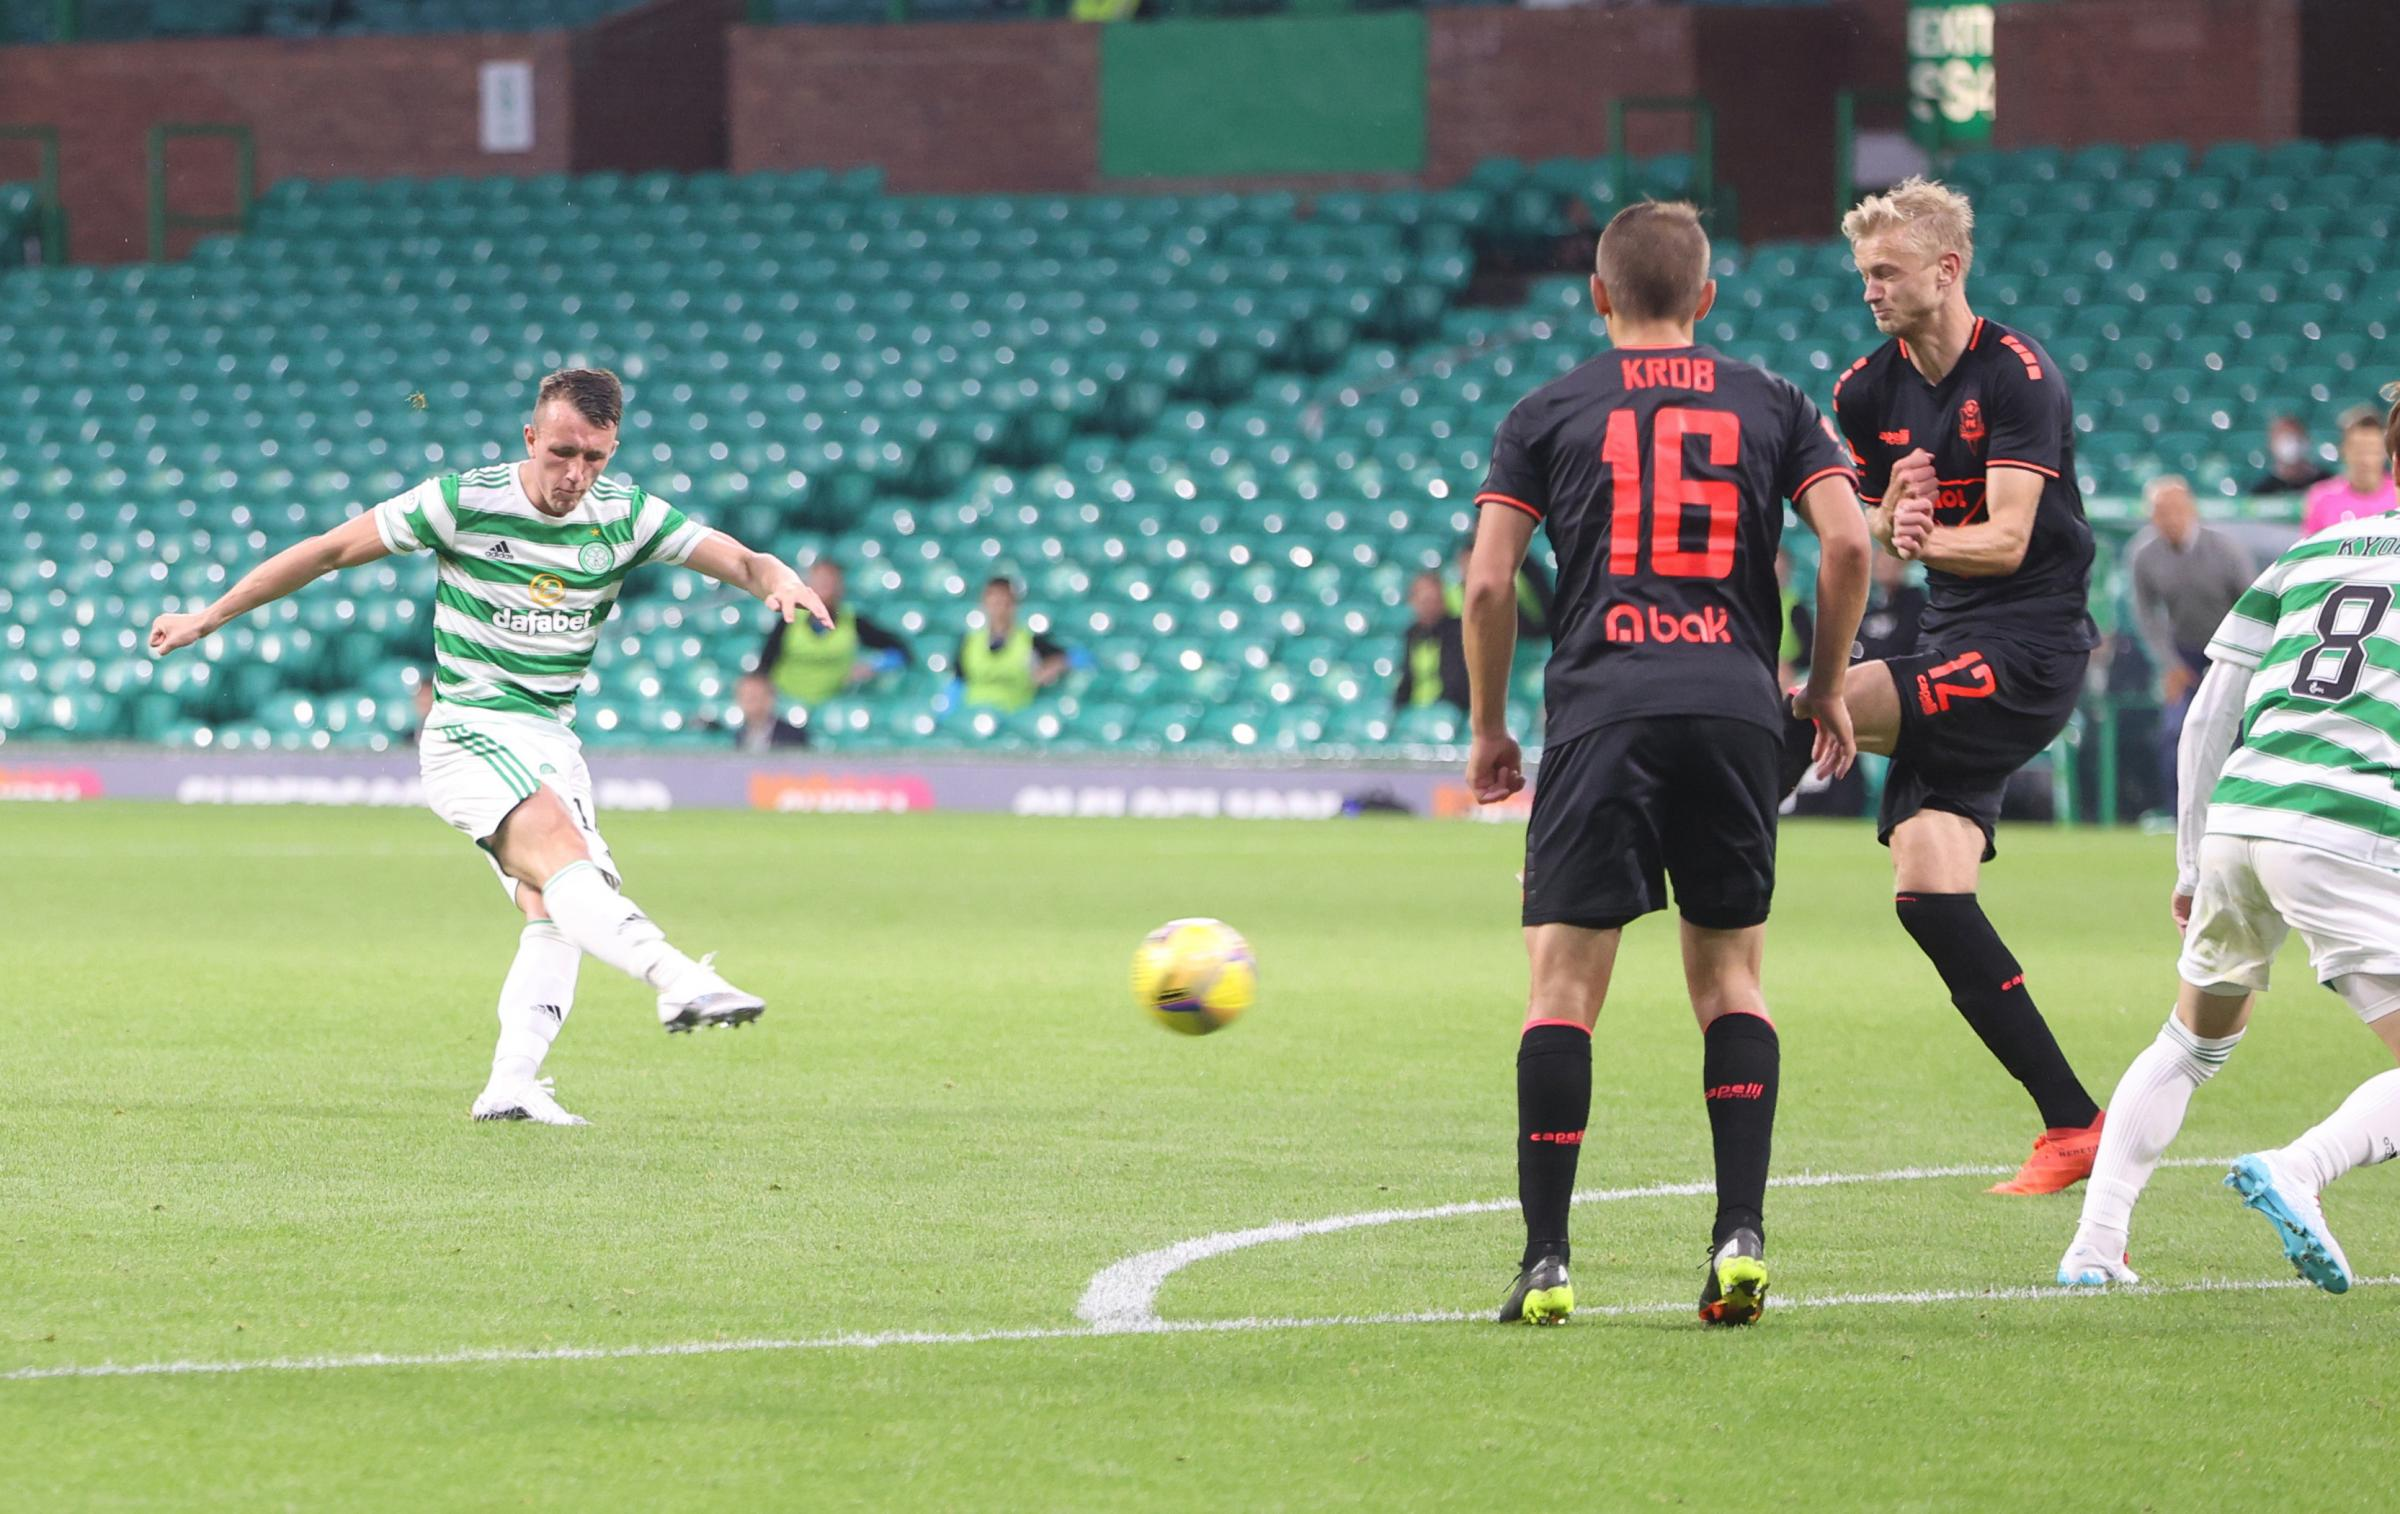 David Turnbull says there is more to come from him and Celtic as double has him firing once more